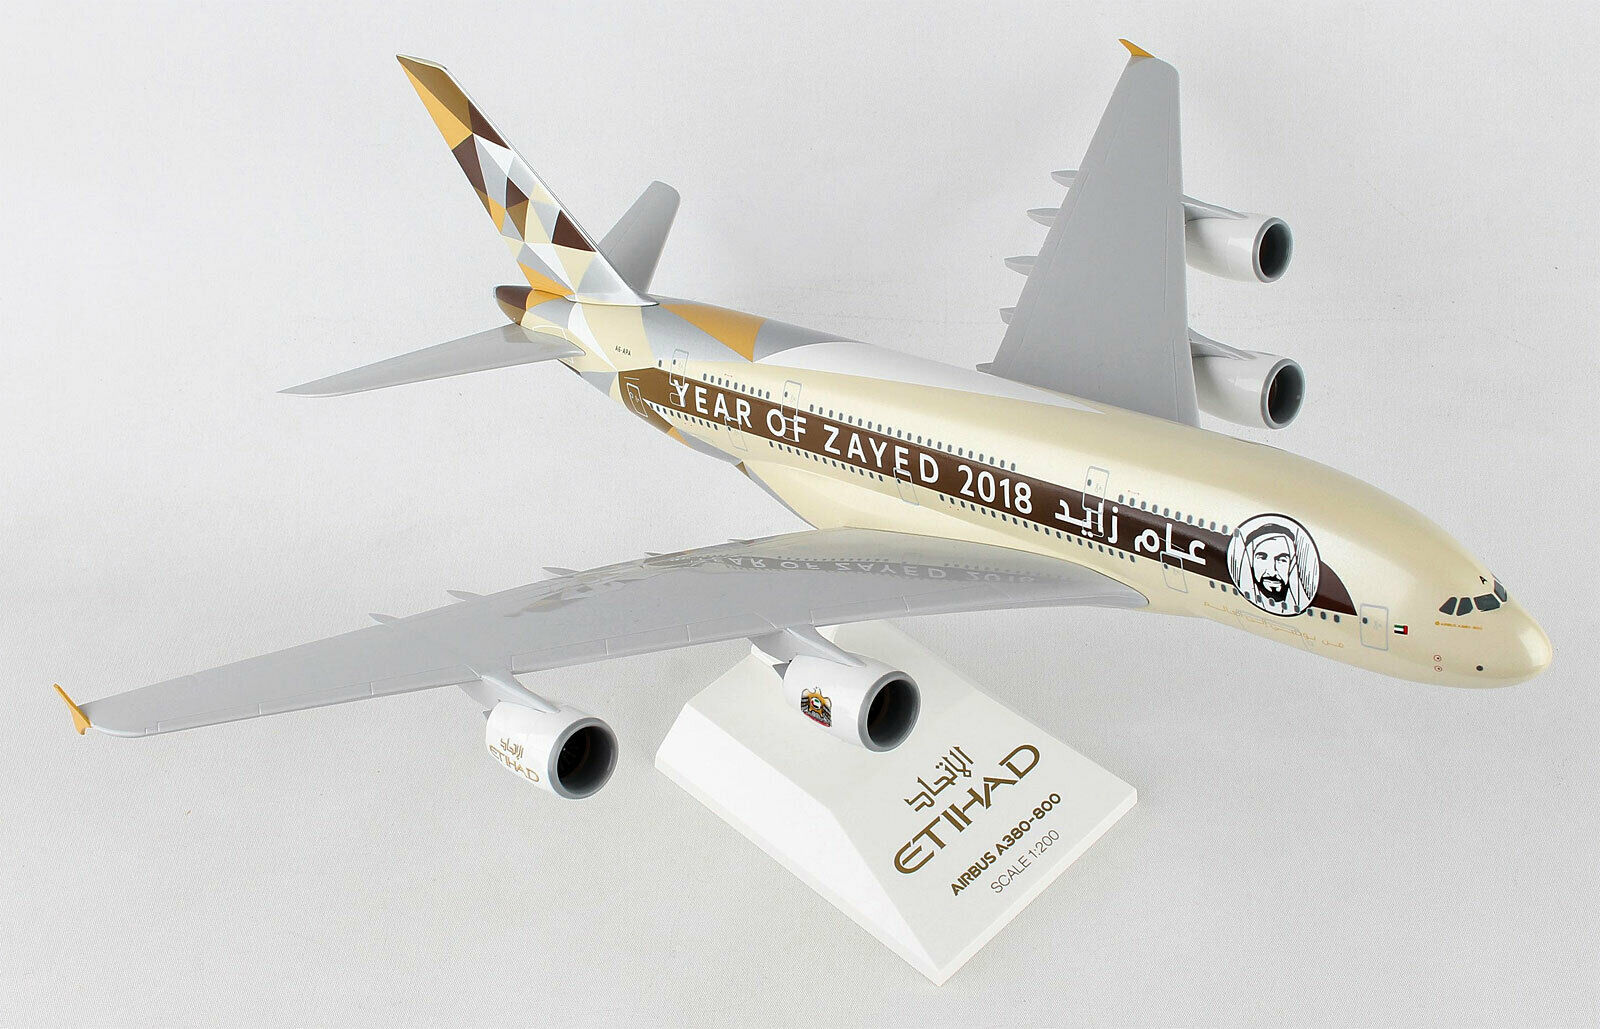 Etihad-Year of Zayed-Airbus a380-800 1 200 Skymarks skr884 a388 Modèle